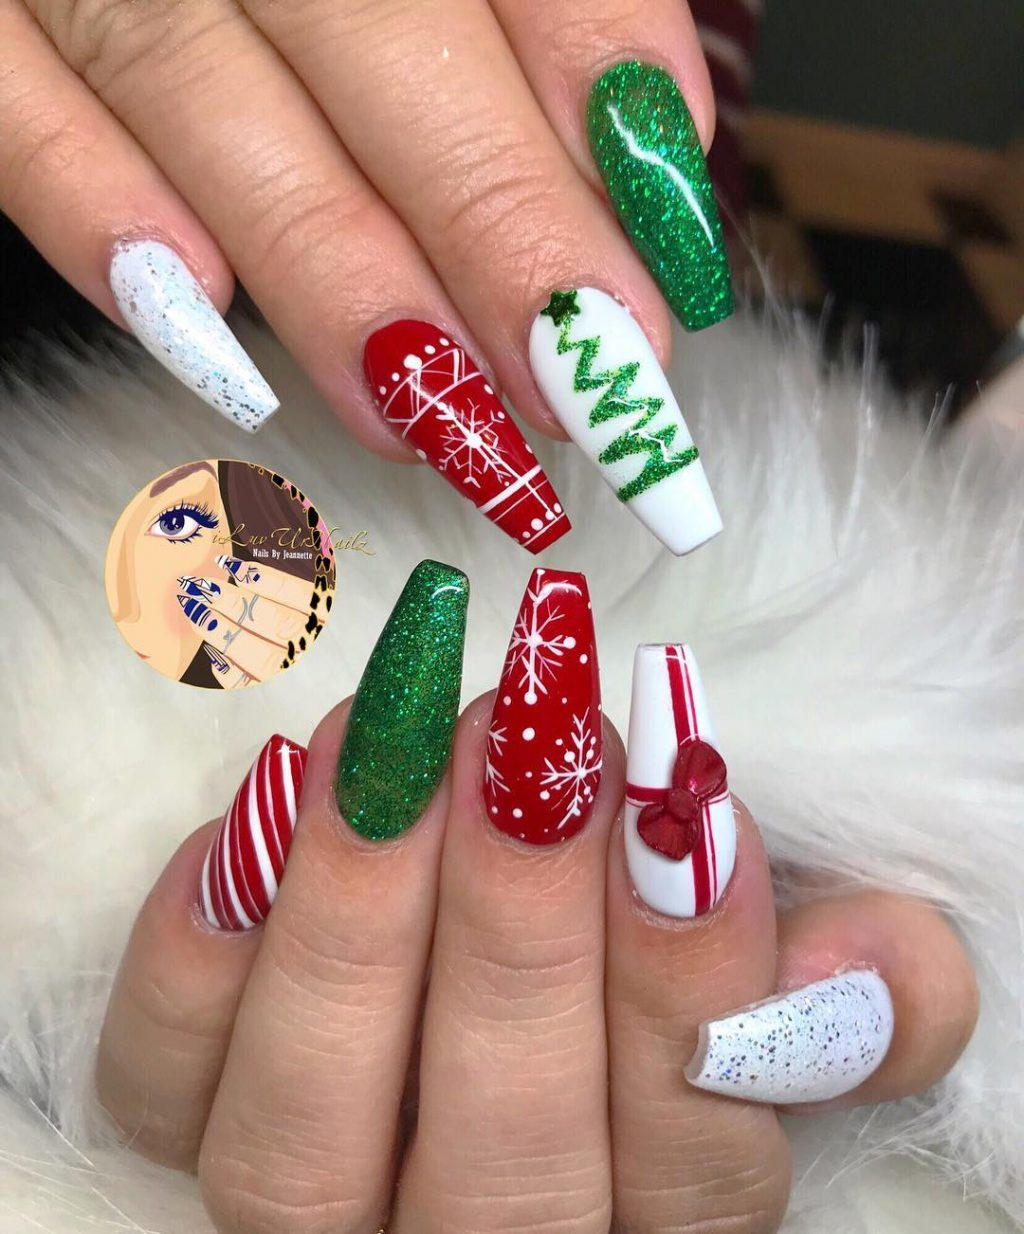 The Cutest and Festive Christmas Nail Designs for Celebration